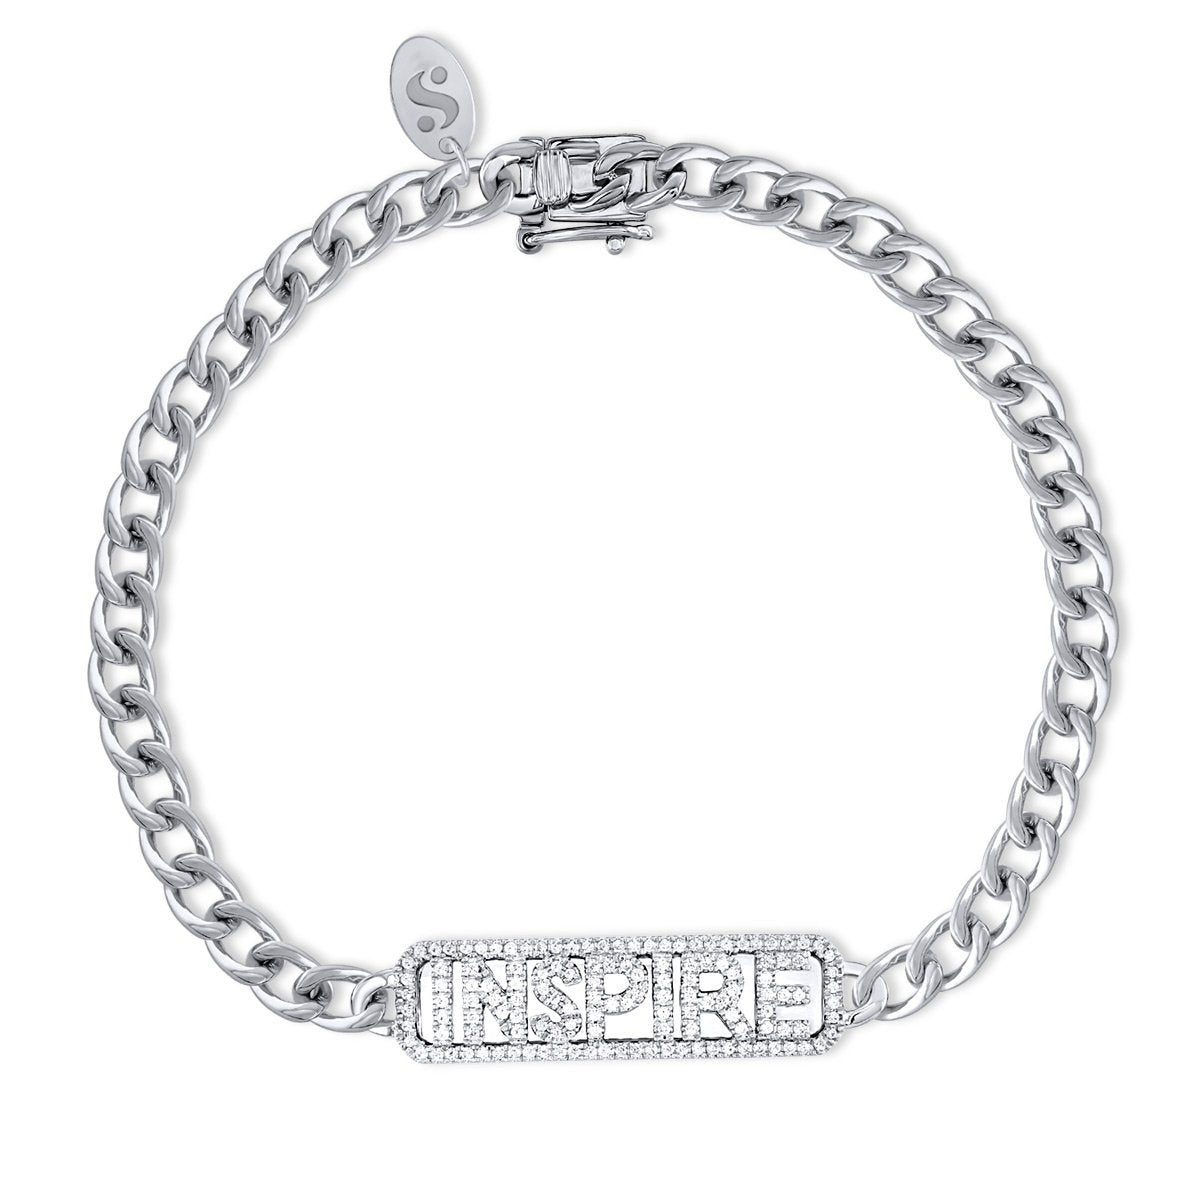 'Inspire' ID Bracelet - Serena Williams Jewelry